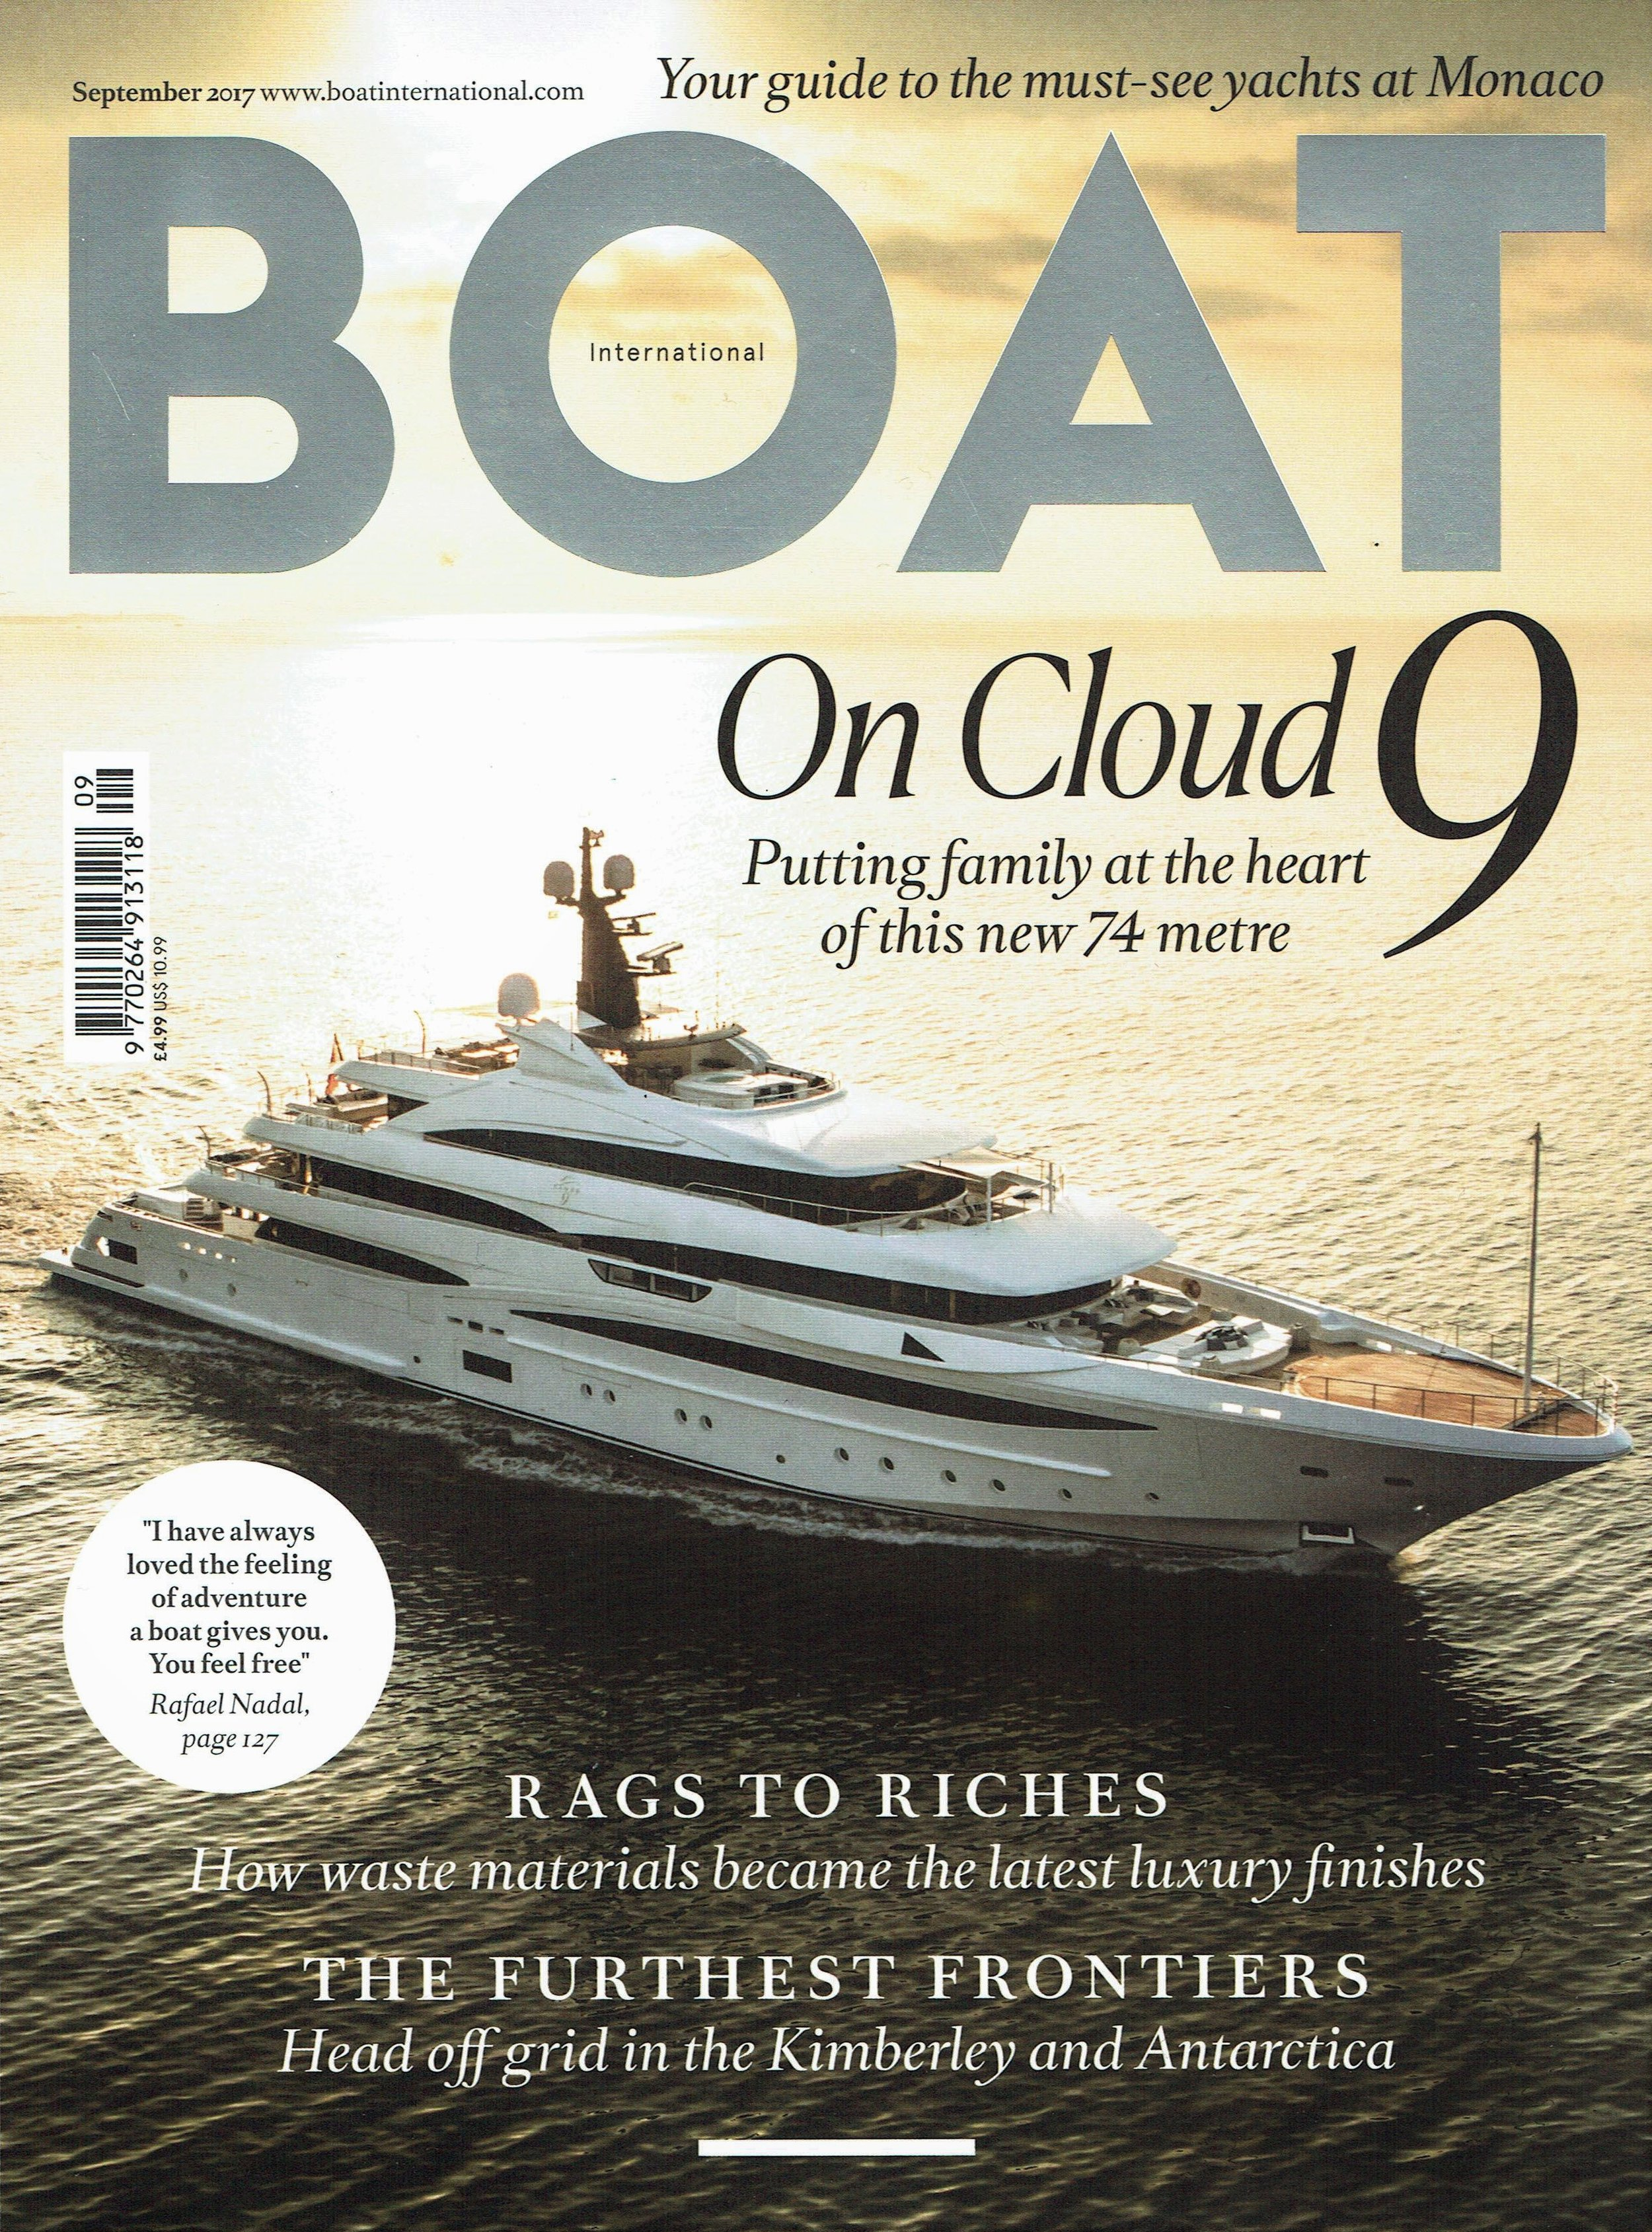 Boat Intnl cover Sept 17-page-001.jpg